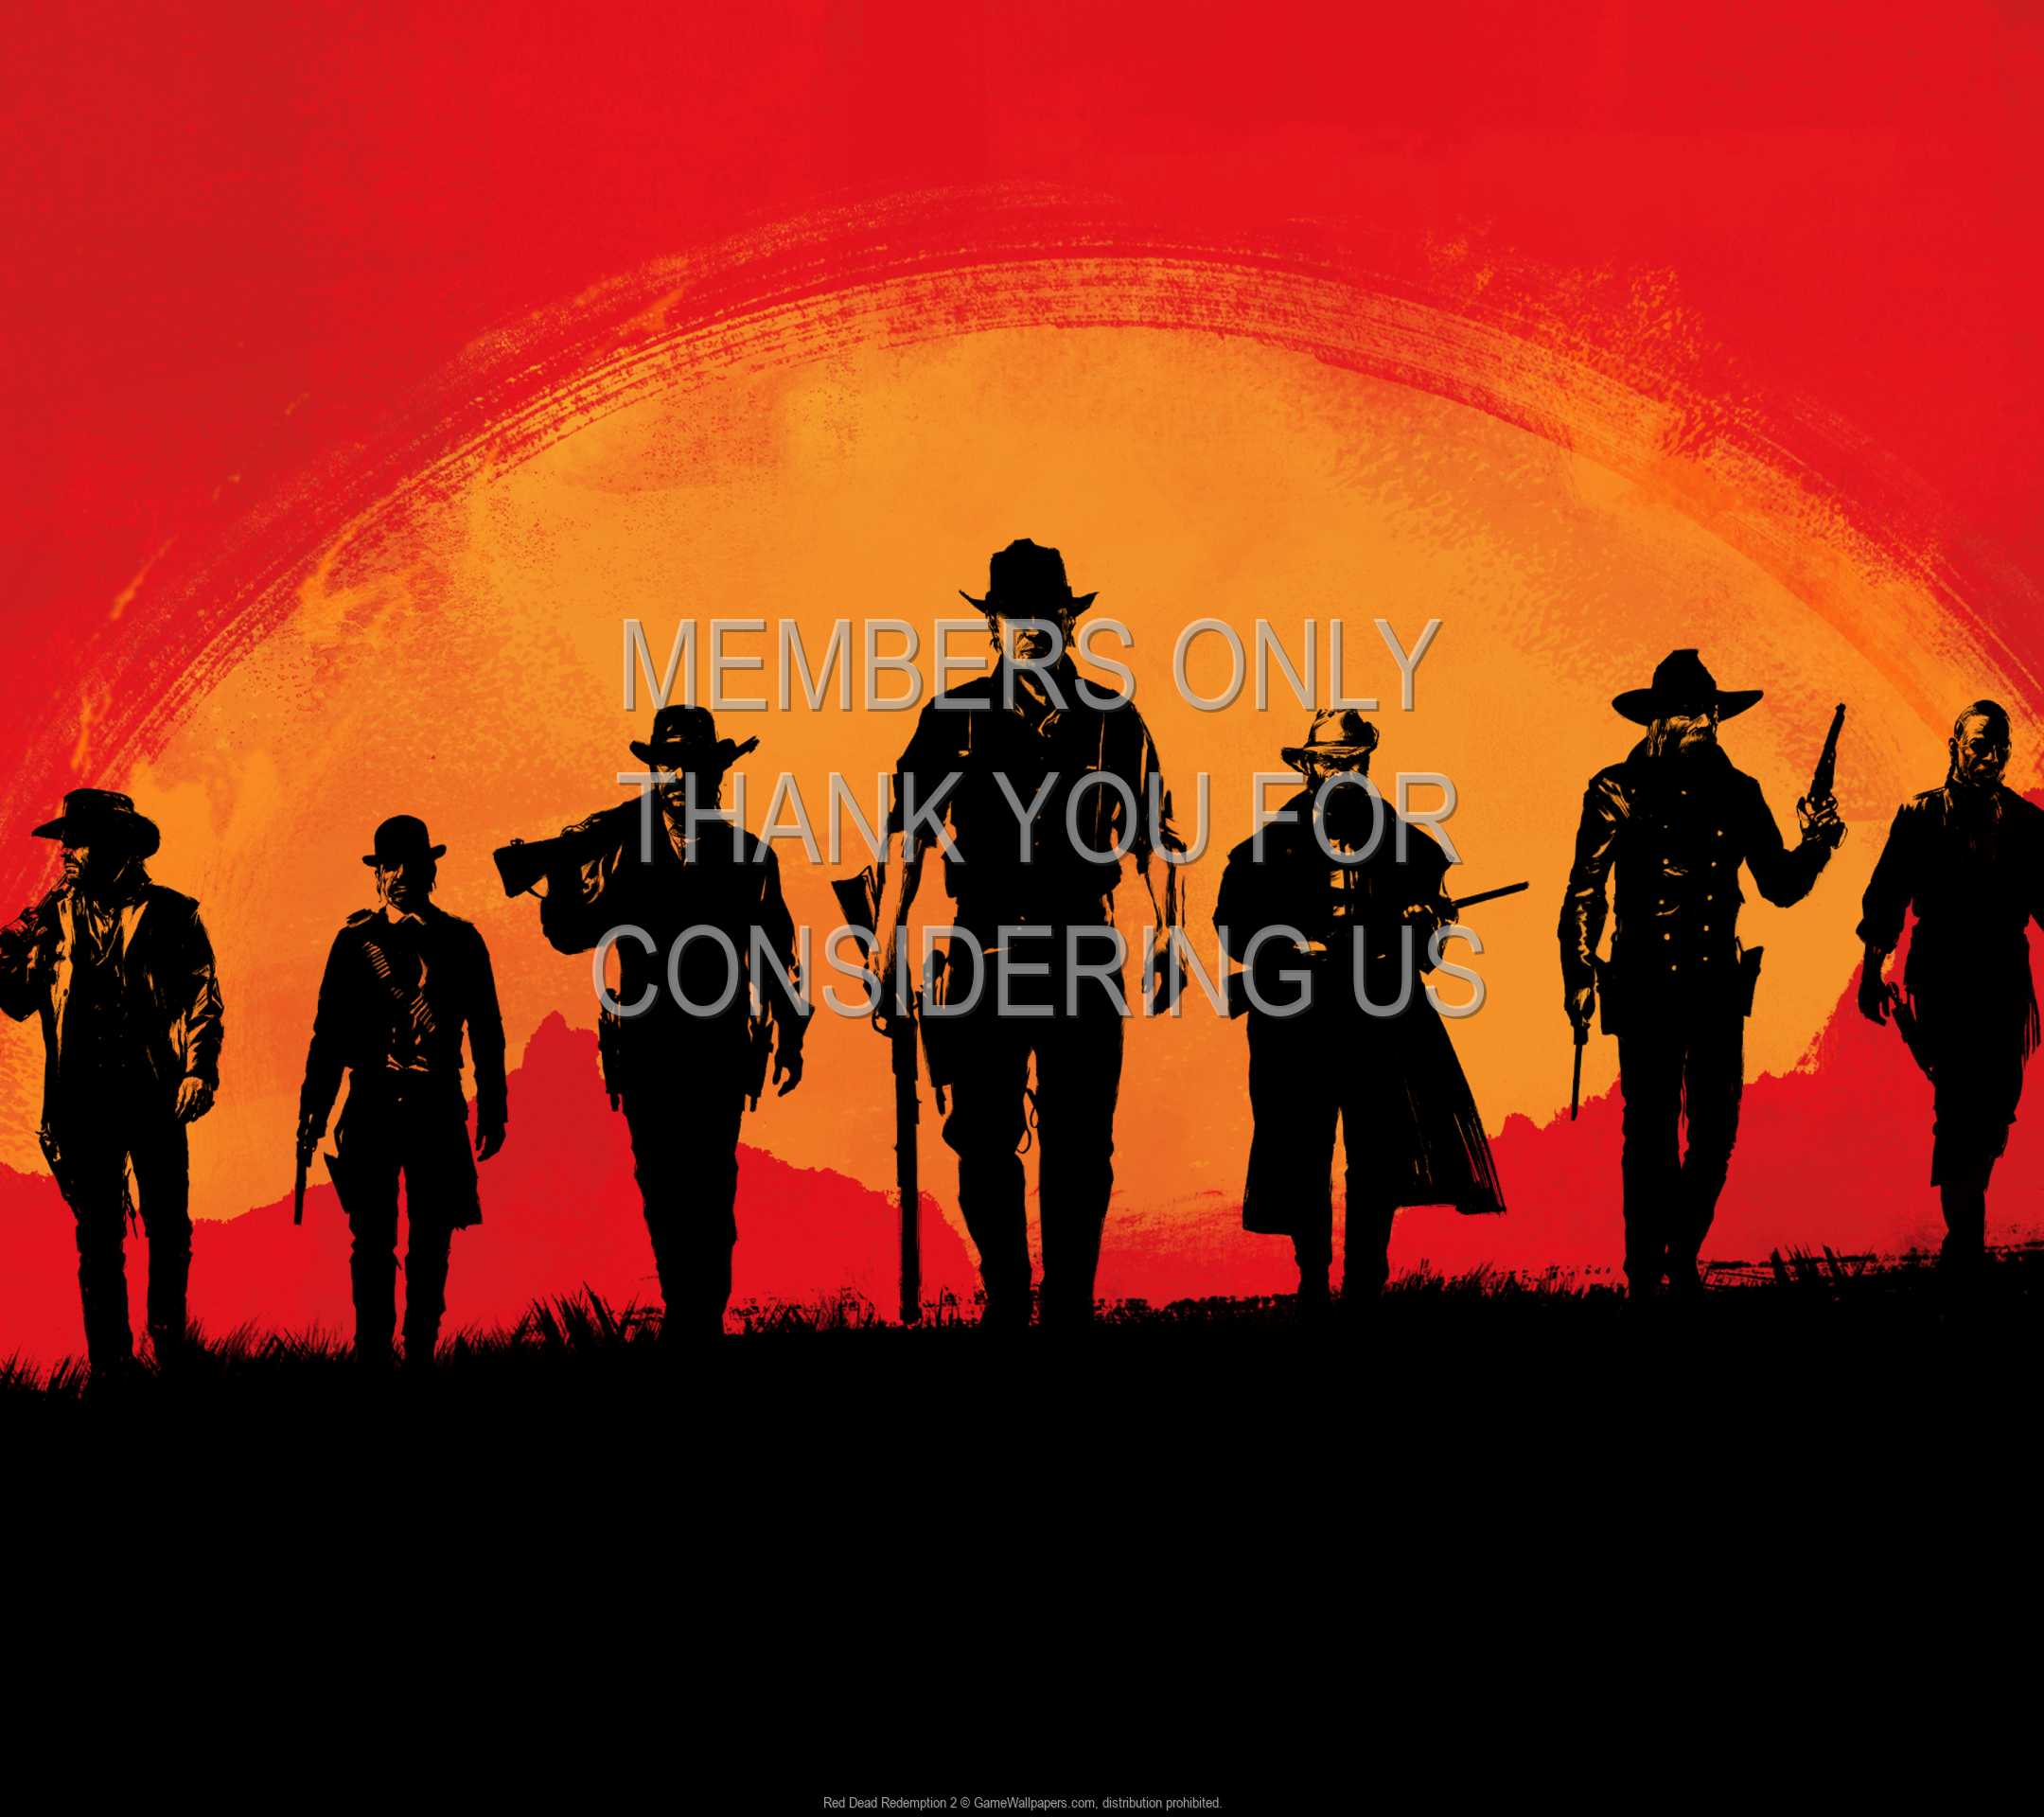 Red Dead Redemption 2 1080p Horizontal Mobile wallpaper or background 01